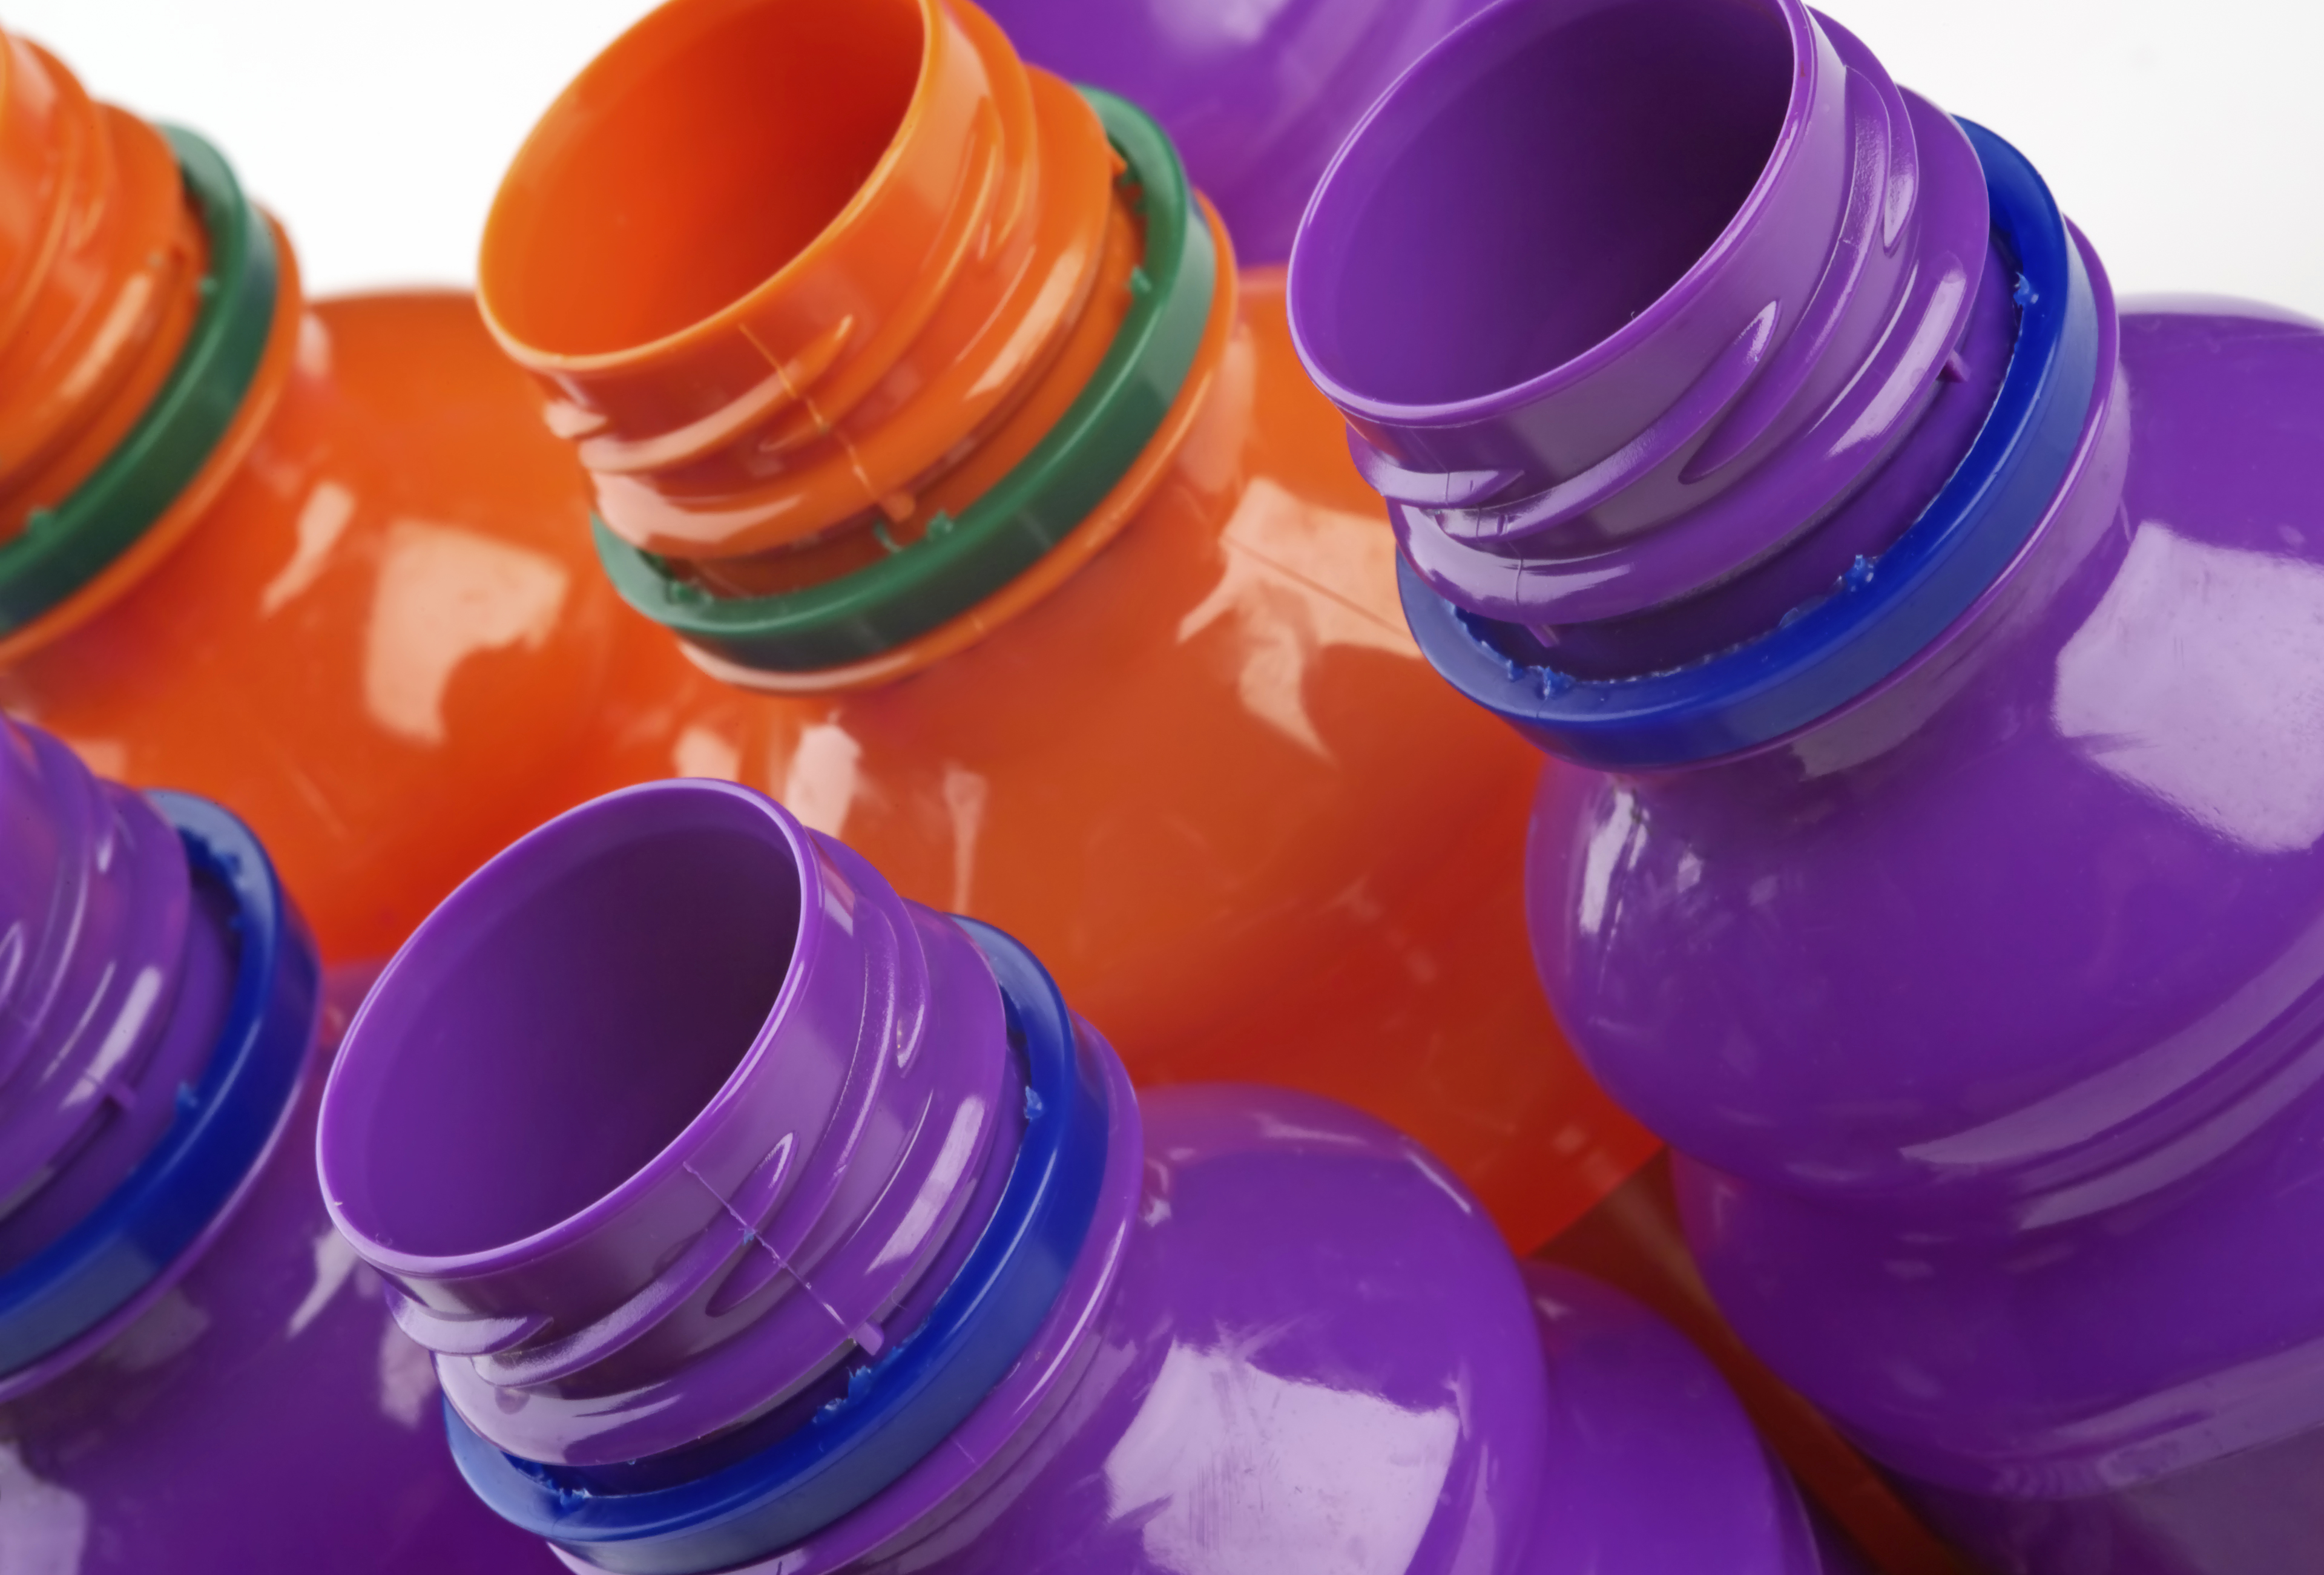 Chemical In Bpa Free Plastic May Not Be Any Safer Cbs News